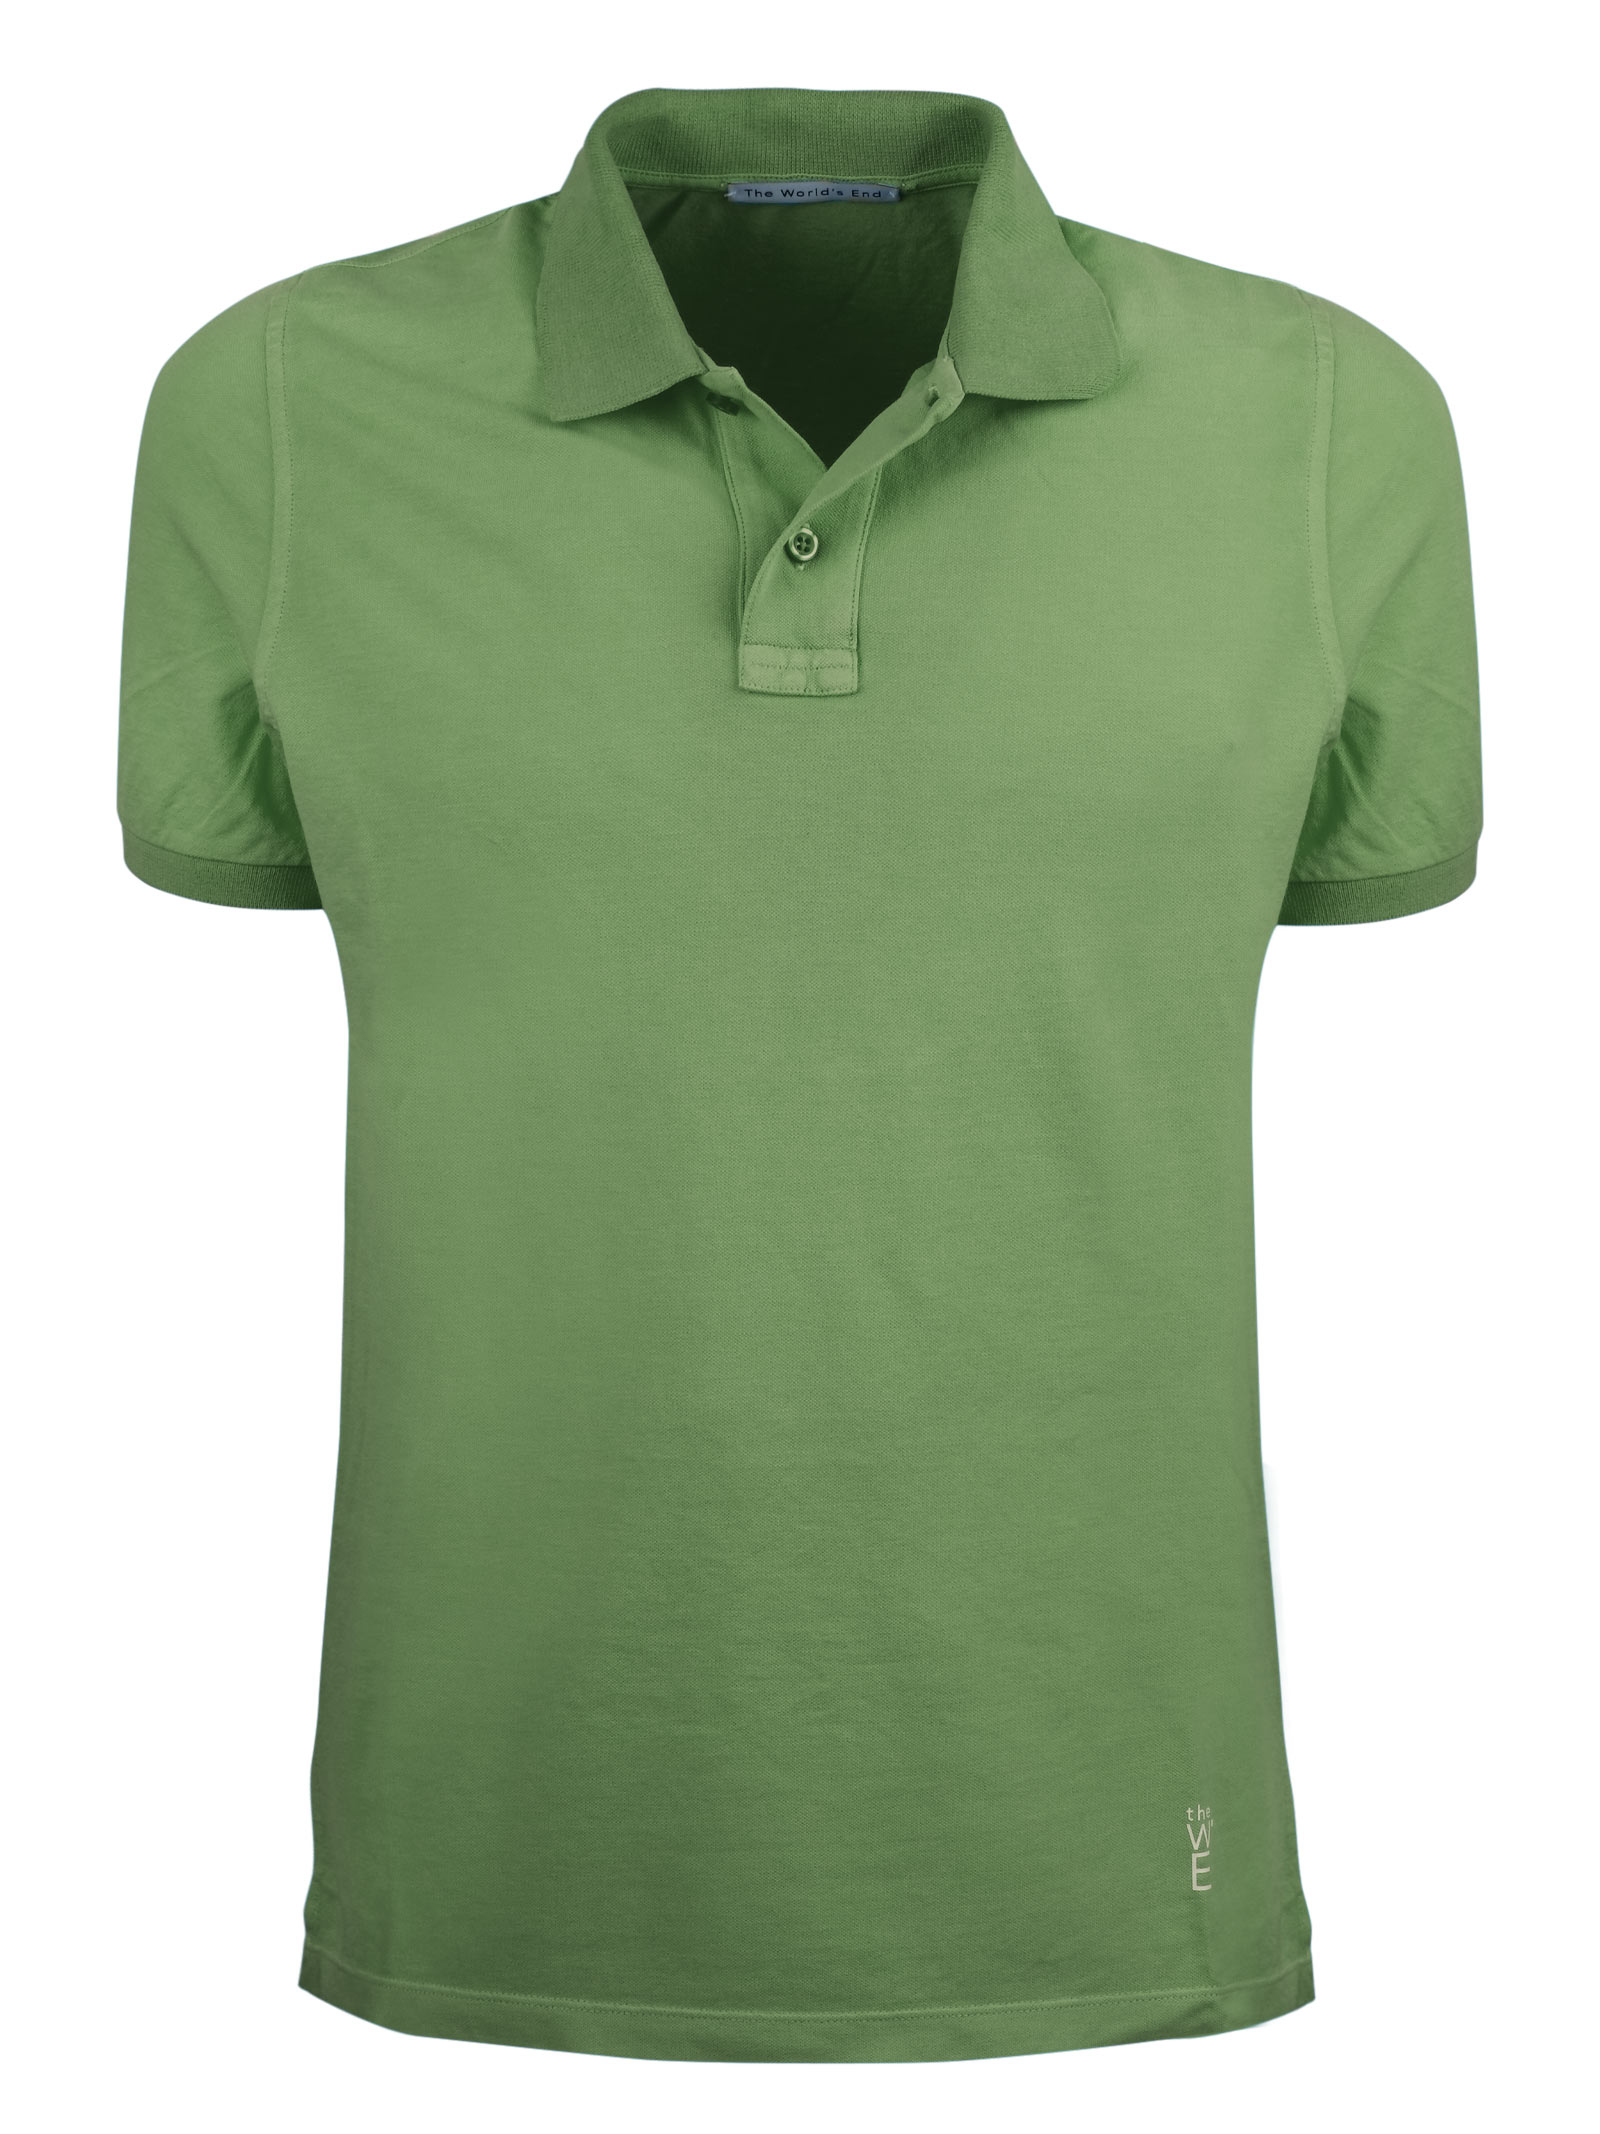 Short sleeves polo, two buttons garment dyed. THE WORLD END   Polos   100224